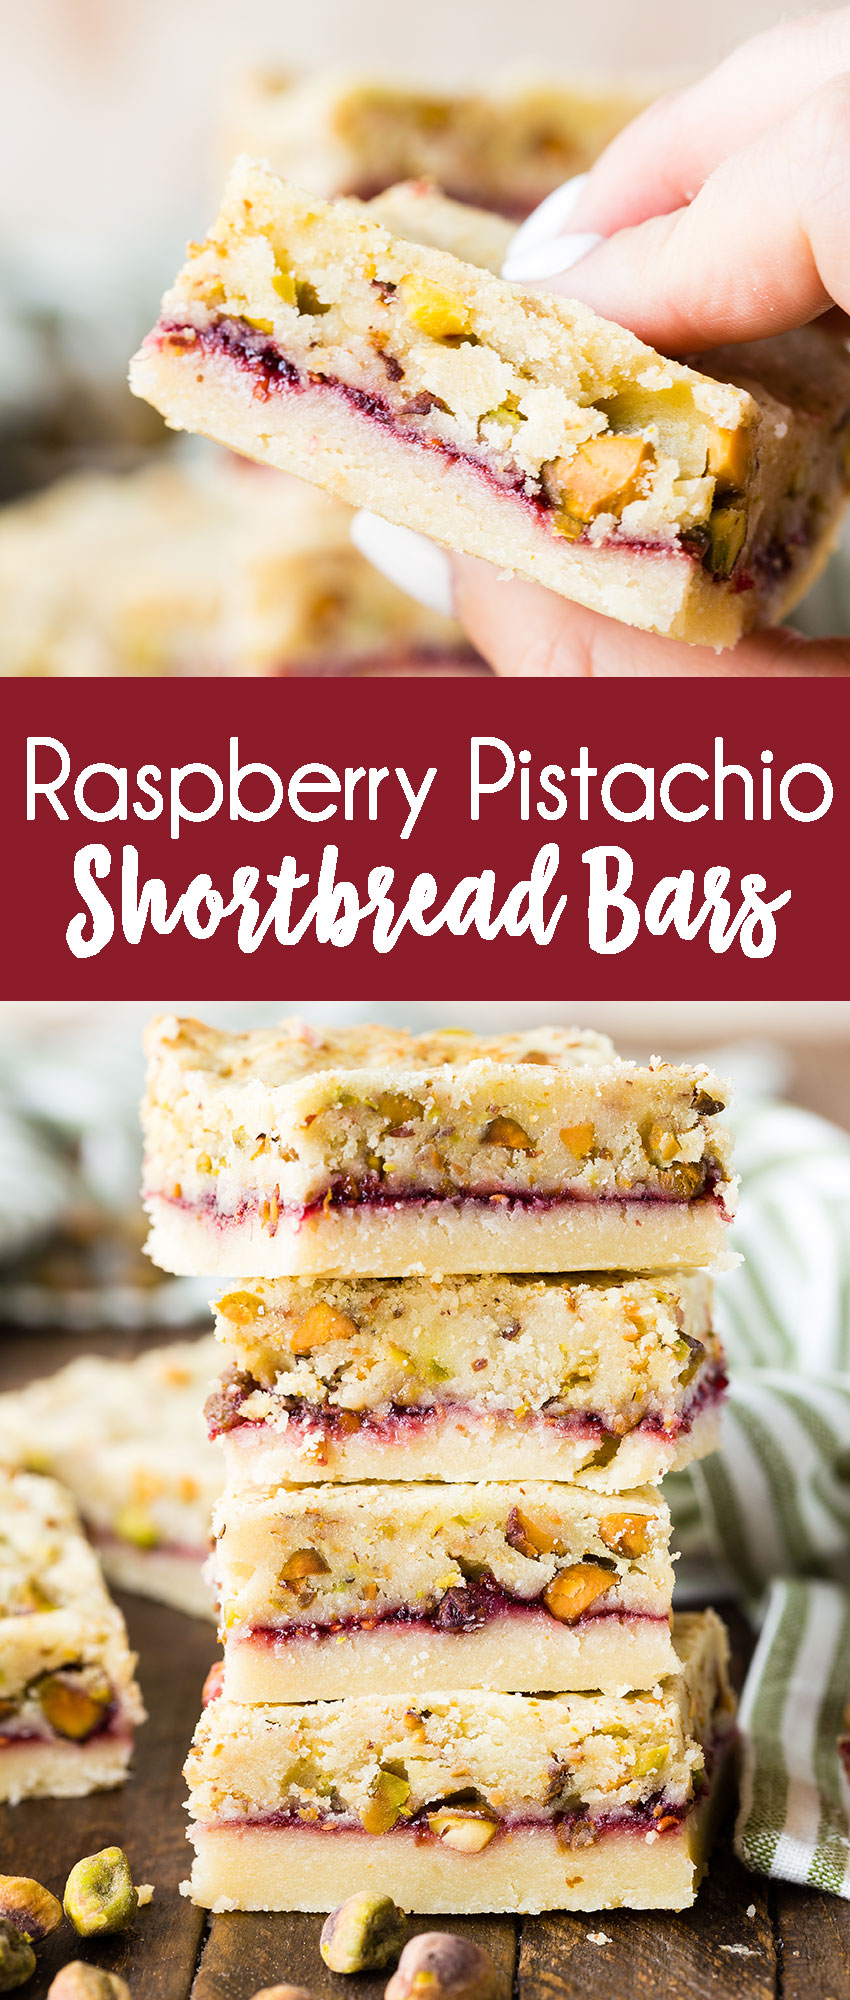 Buttery shortbread with a jam and pistachio layer, to make a cookie bar